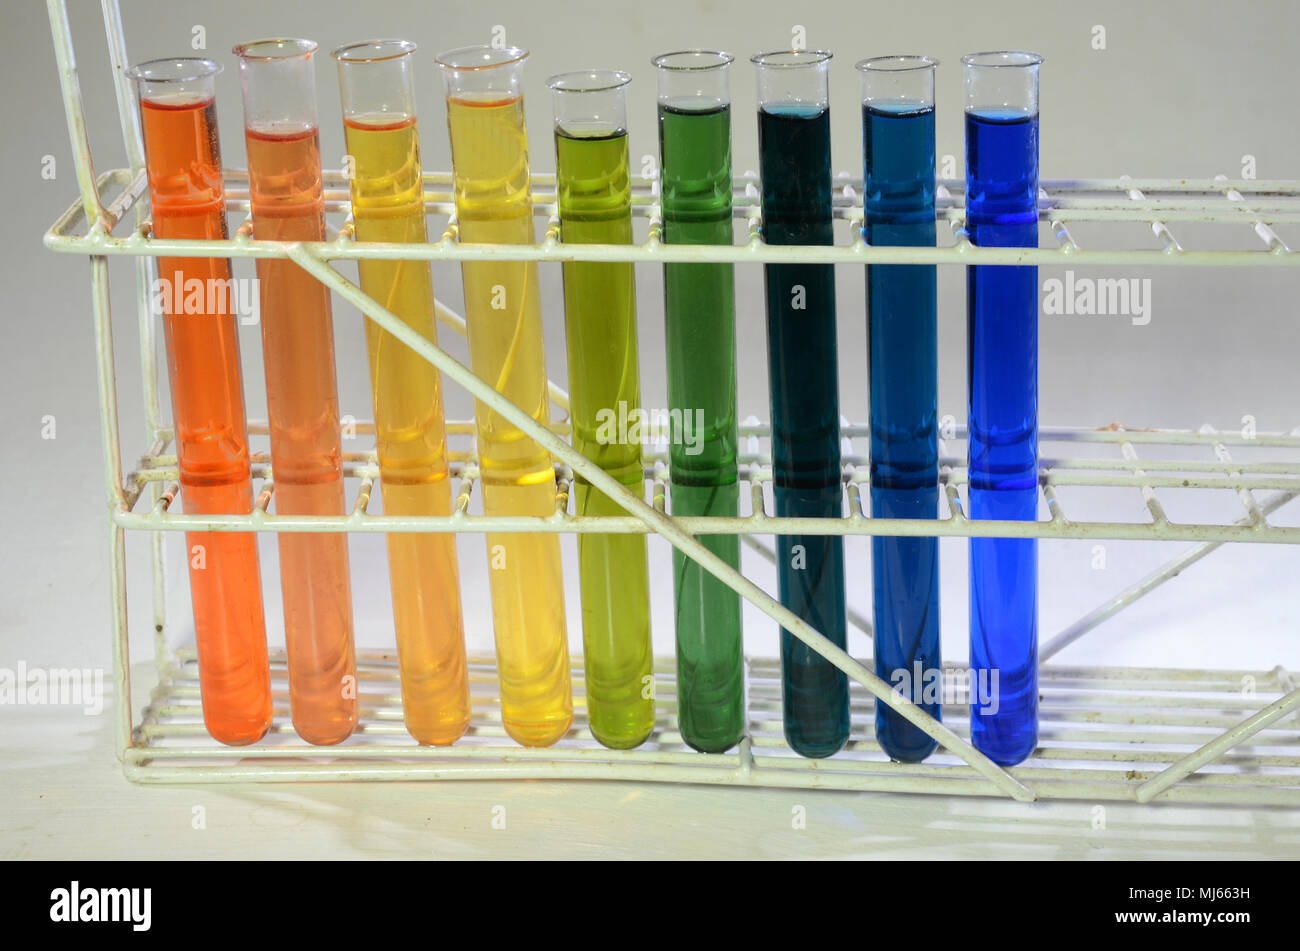 Different States Of Bromothymol Blue From Left Red For Strong Acid Via Weaker Acids To Green Neutral Then Nuances